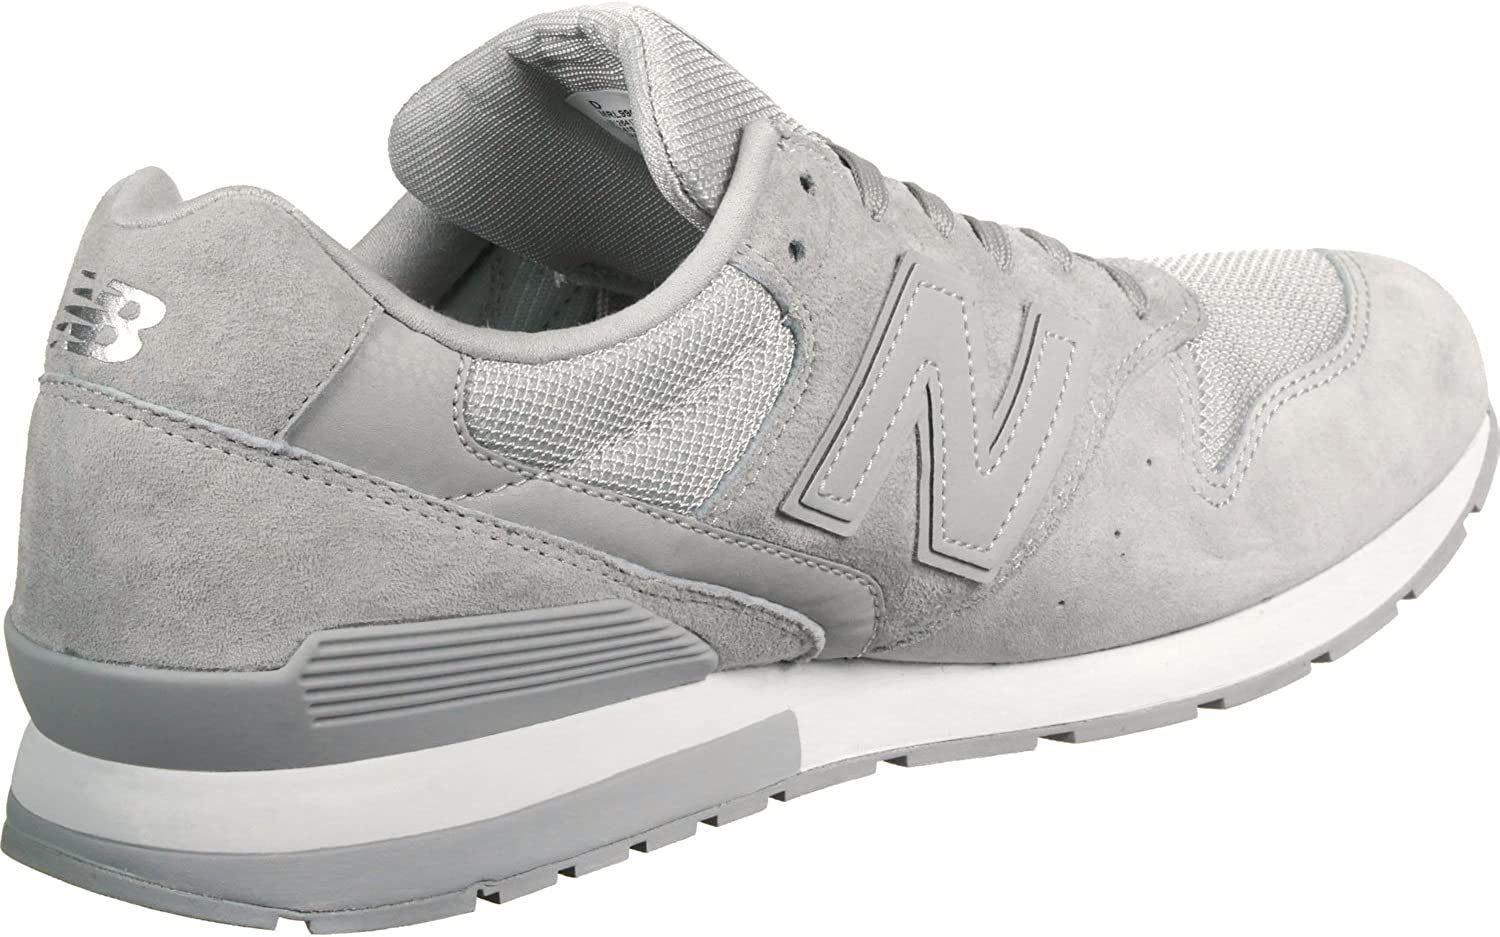 New Balance Unisex Adults' Mrl996-lk-d Low-Top Sneakers